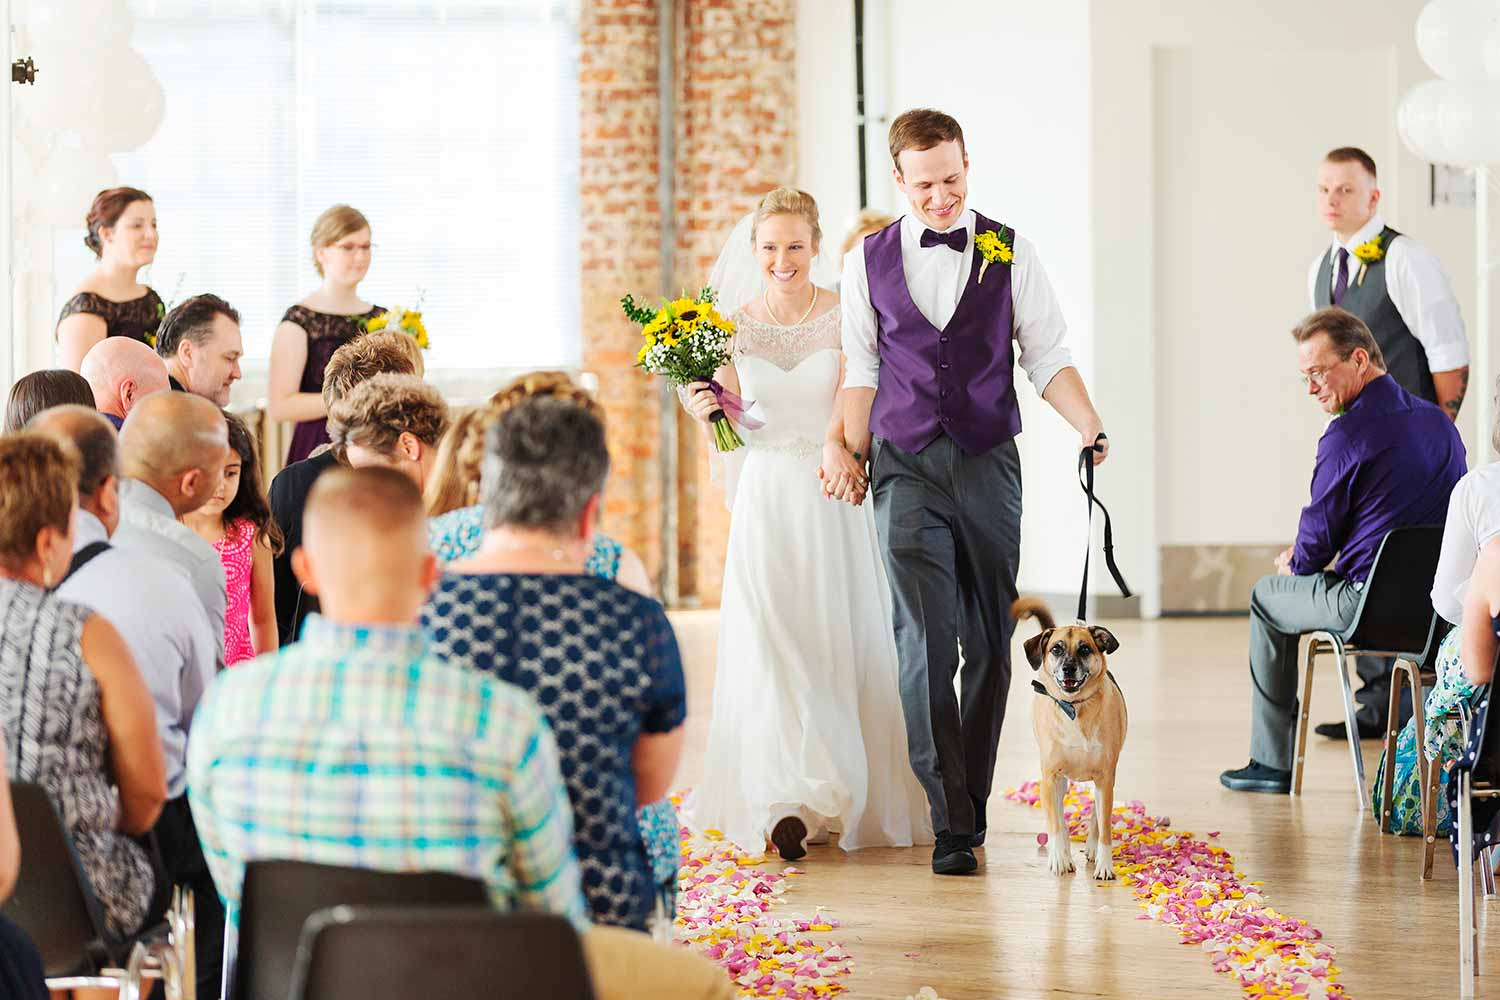 Dog walking with couple at wedding